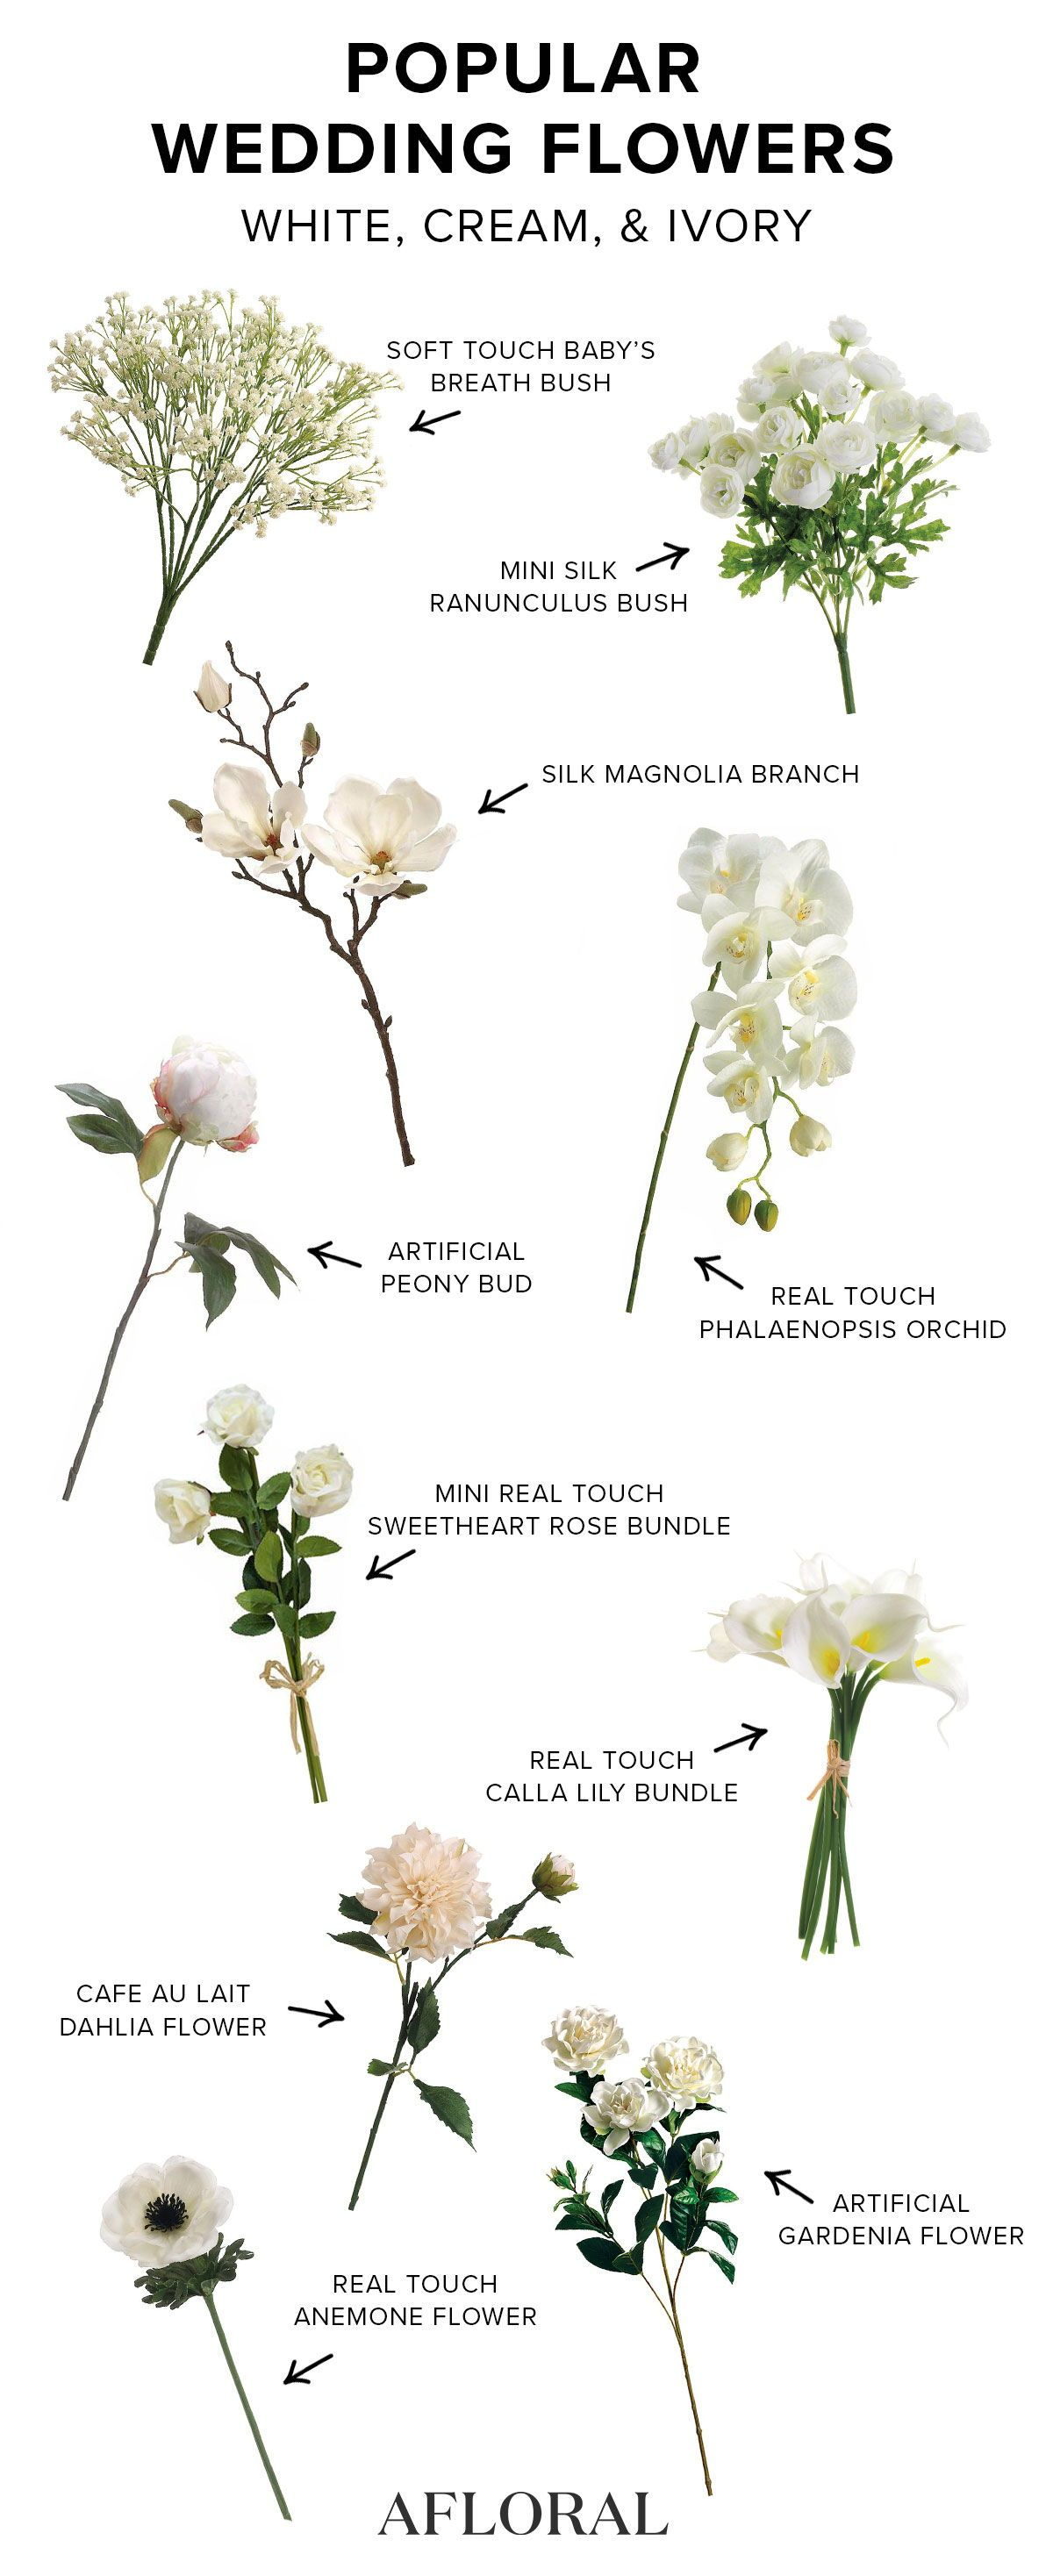 White Artificial Flowers | Silk Wedding Flowers | Afloral.com